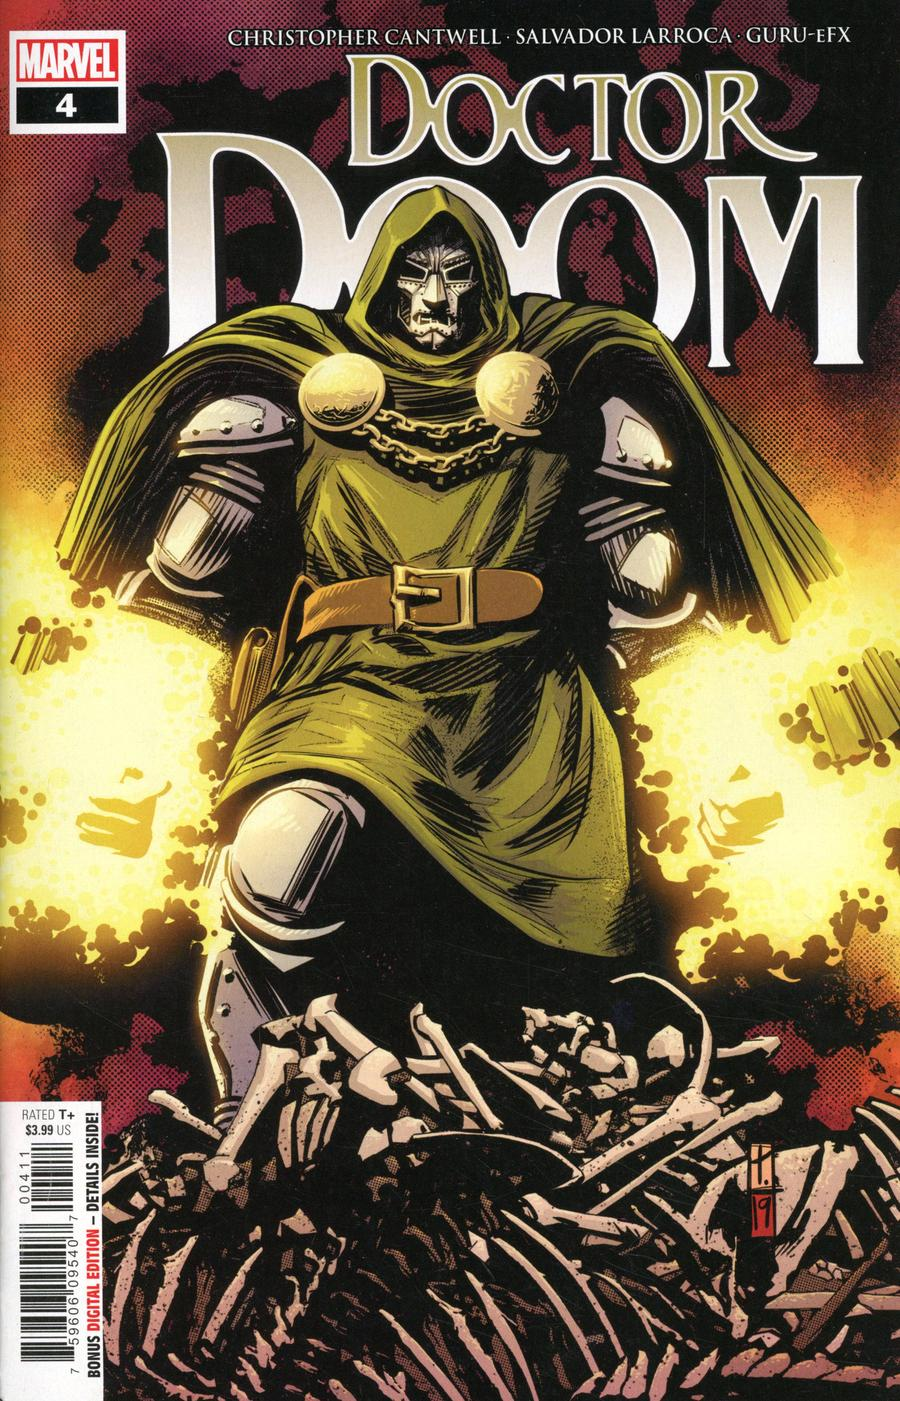 Doctor Doom #4 Cover A 1st Ptg Regular Tomm Coker Cover